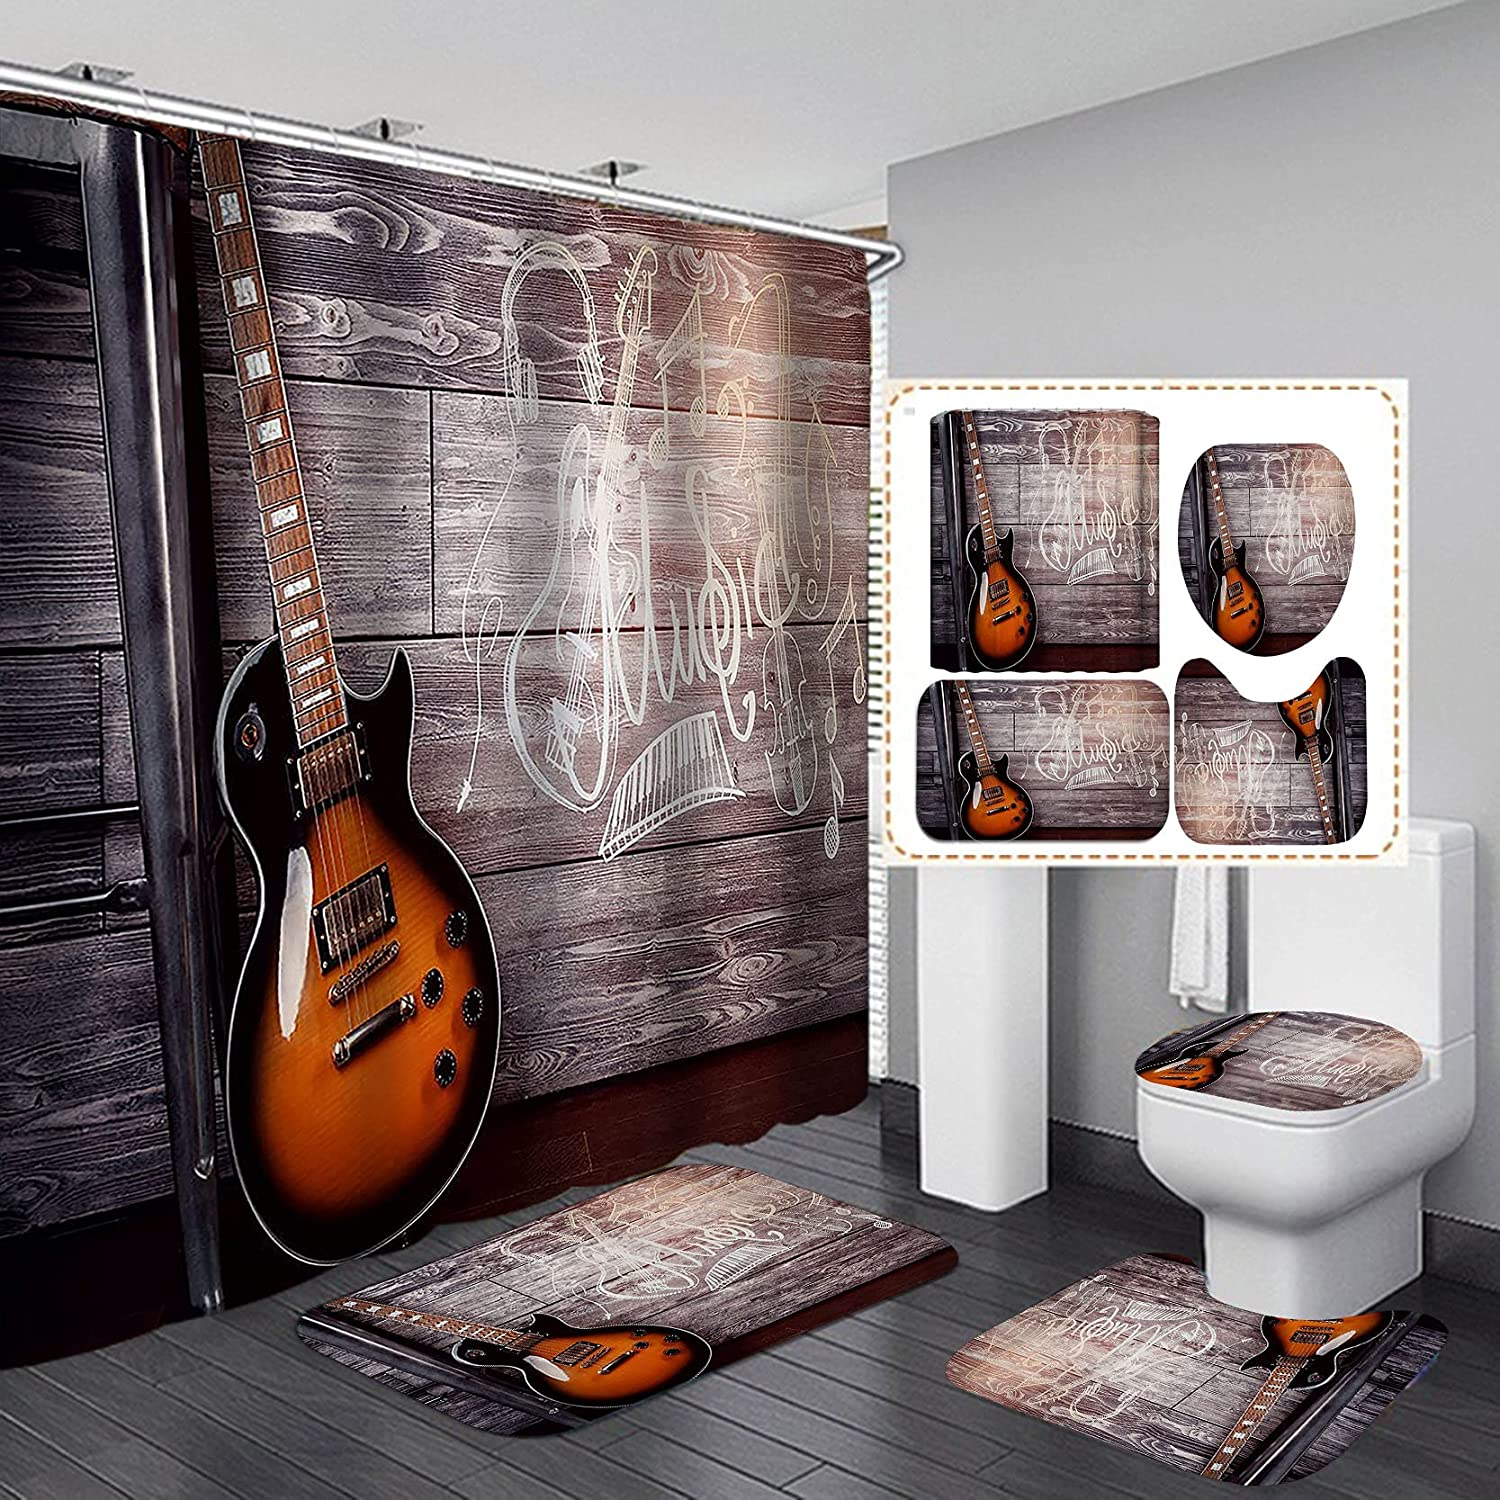 Fashion_Man 4PCS Set Guitar Shower Notes Musica 2021 Topics on TV autumn and winter new Musical Curtain